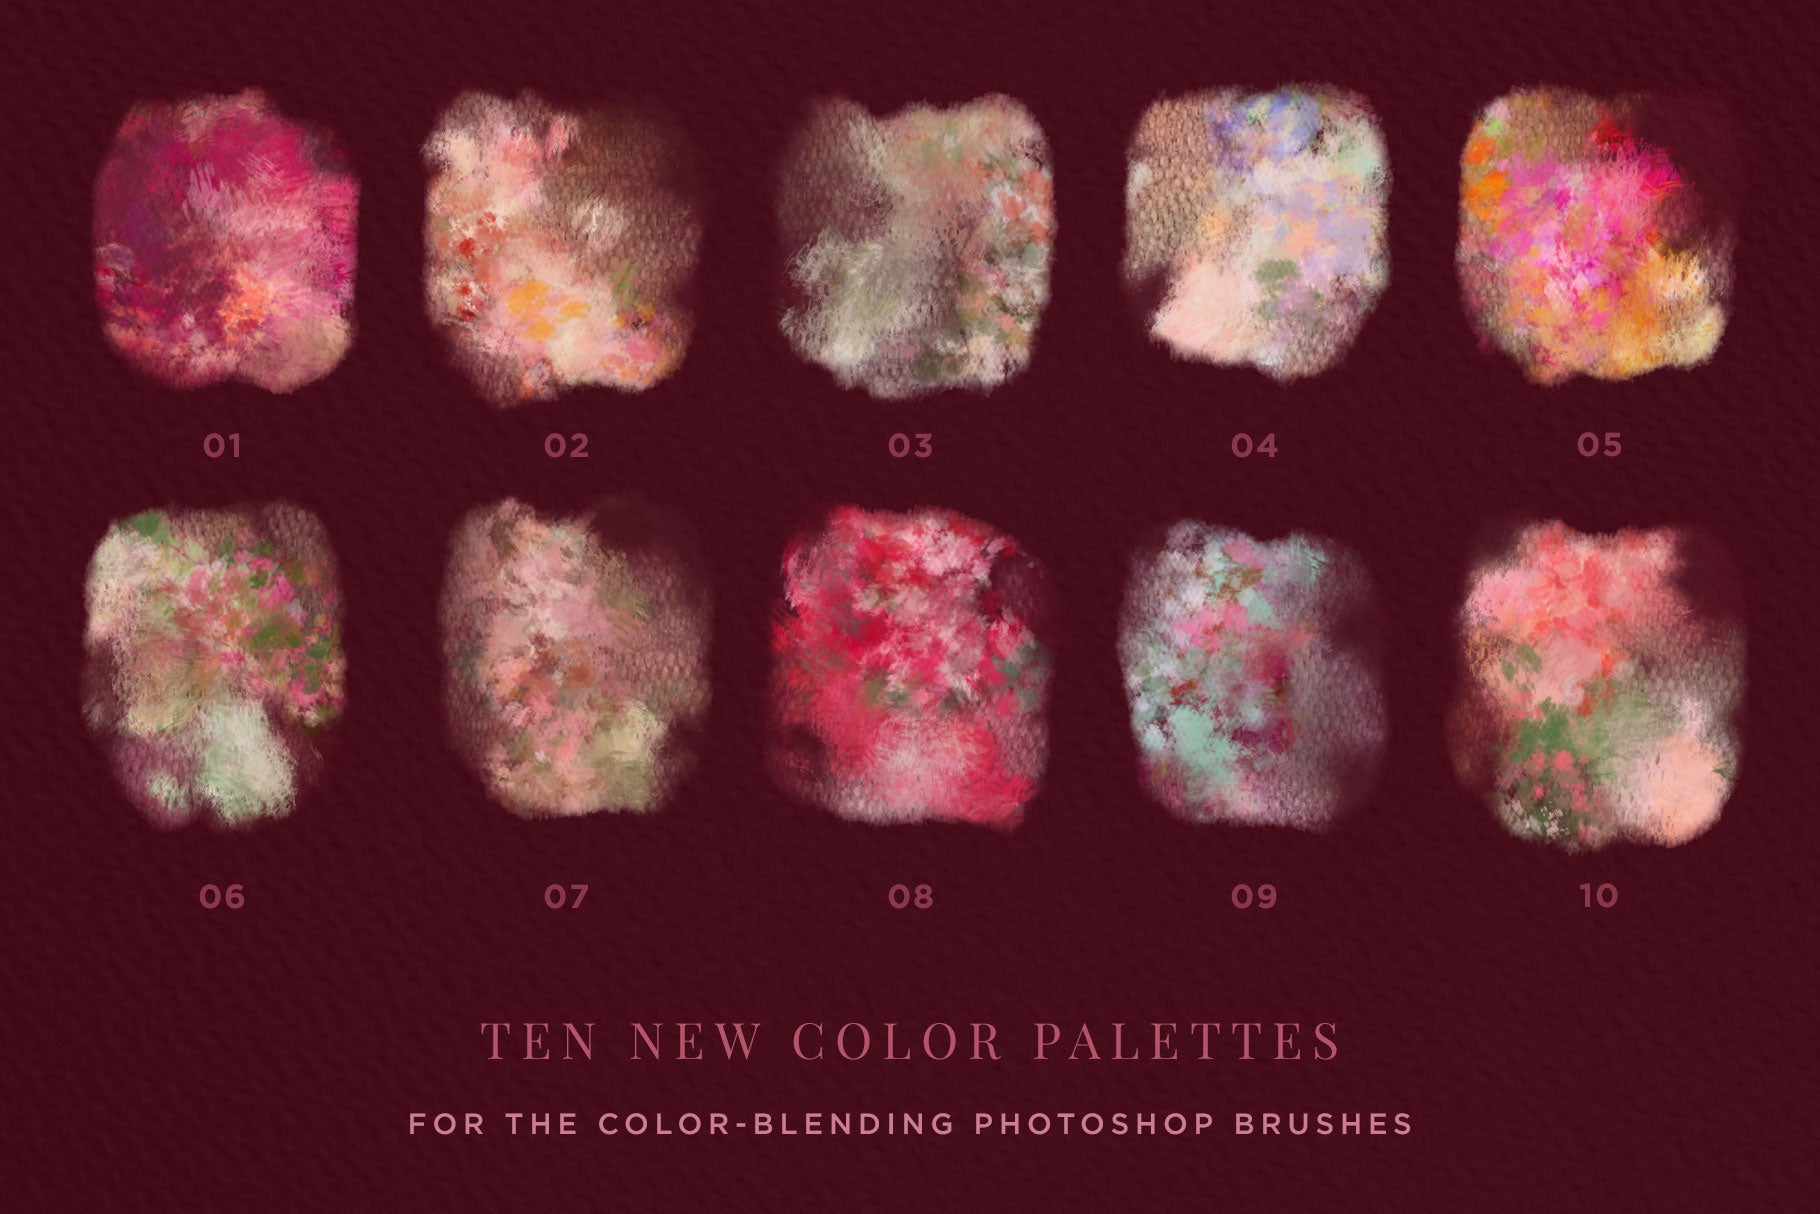 floral and lace wedding and feminine brushes for photoshop floral color palette